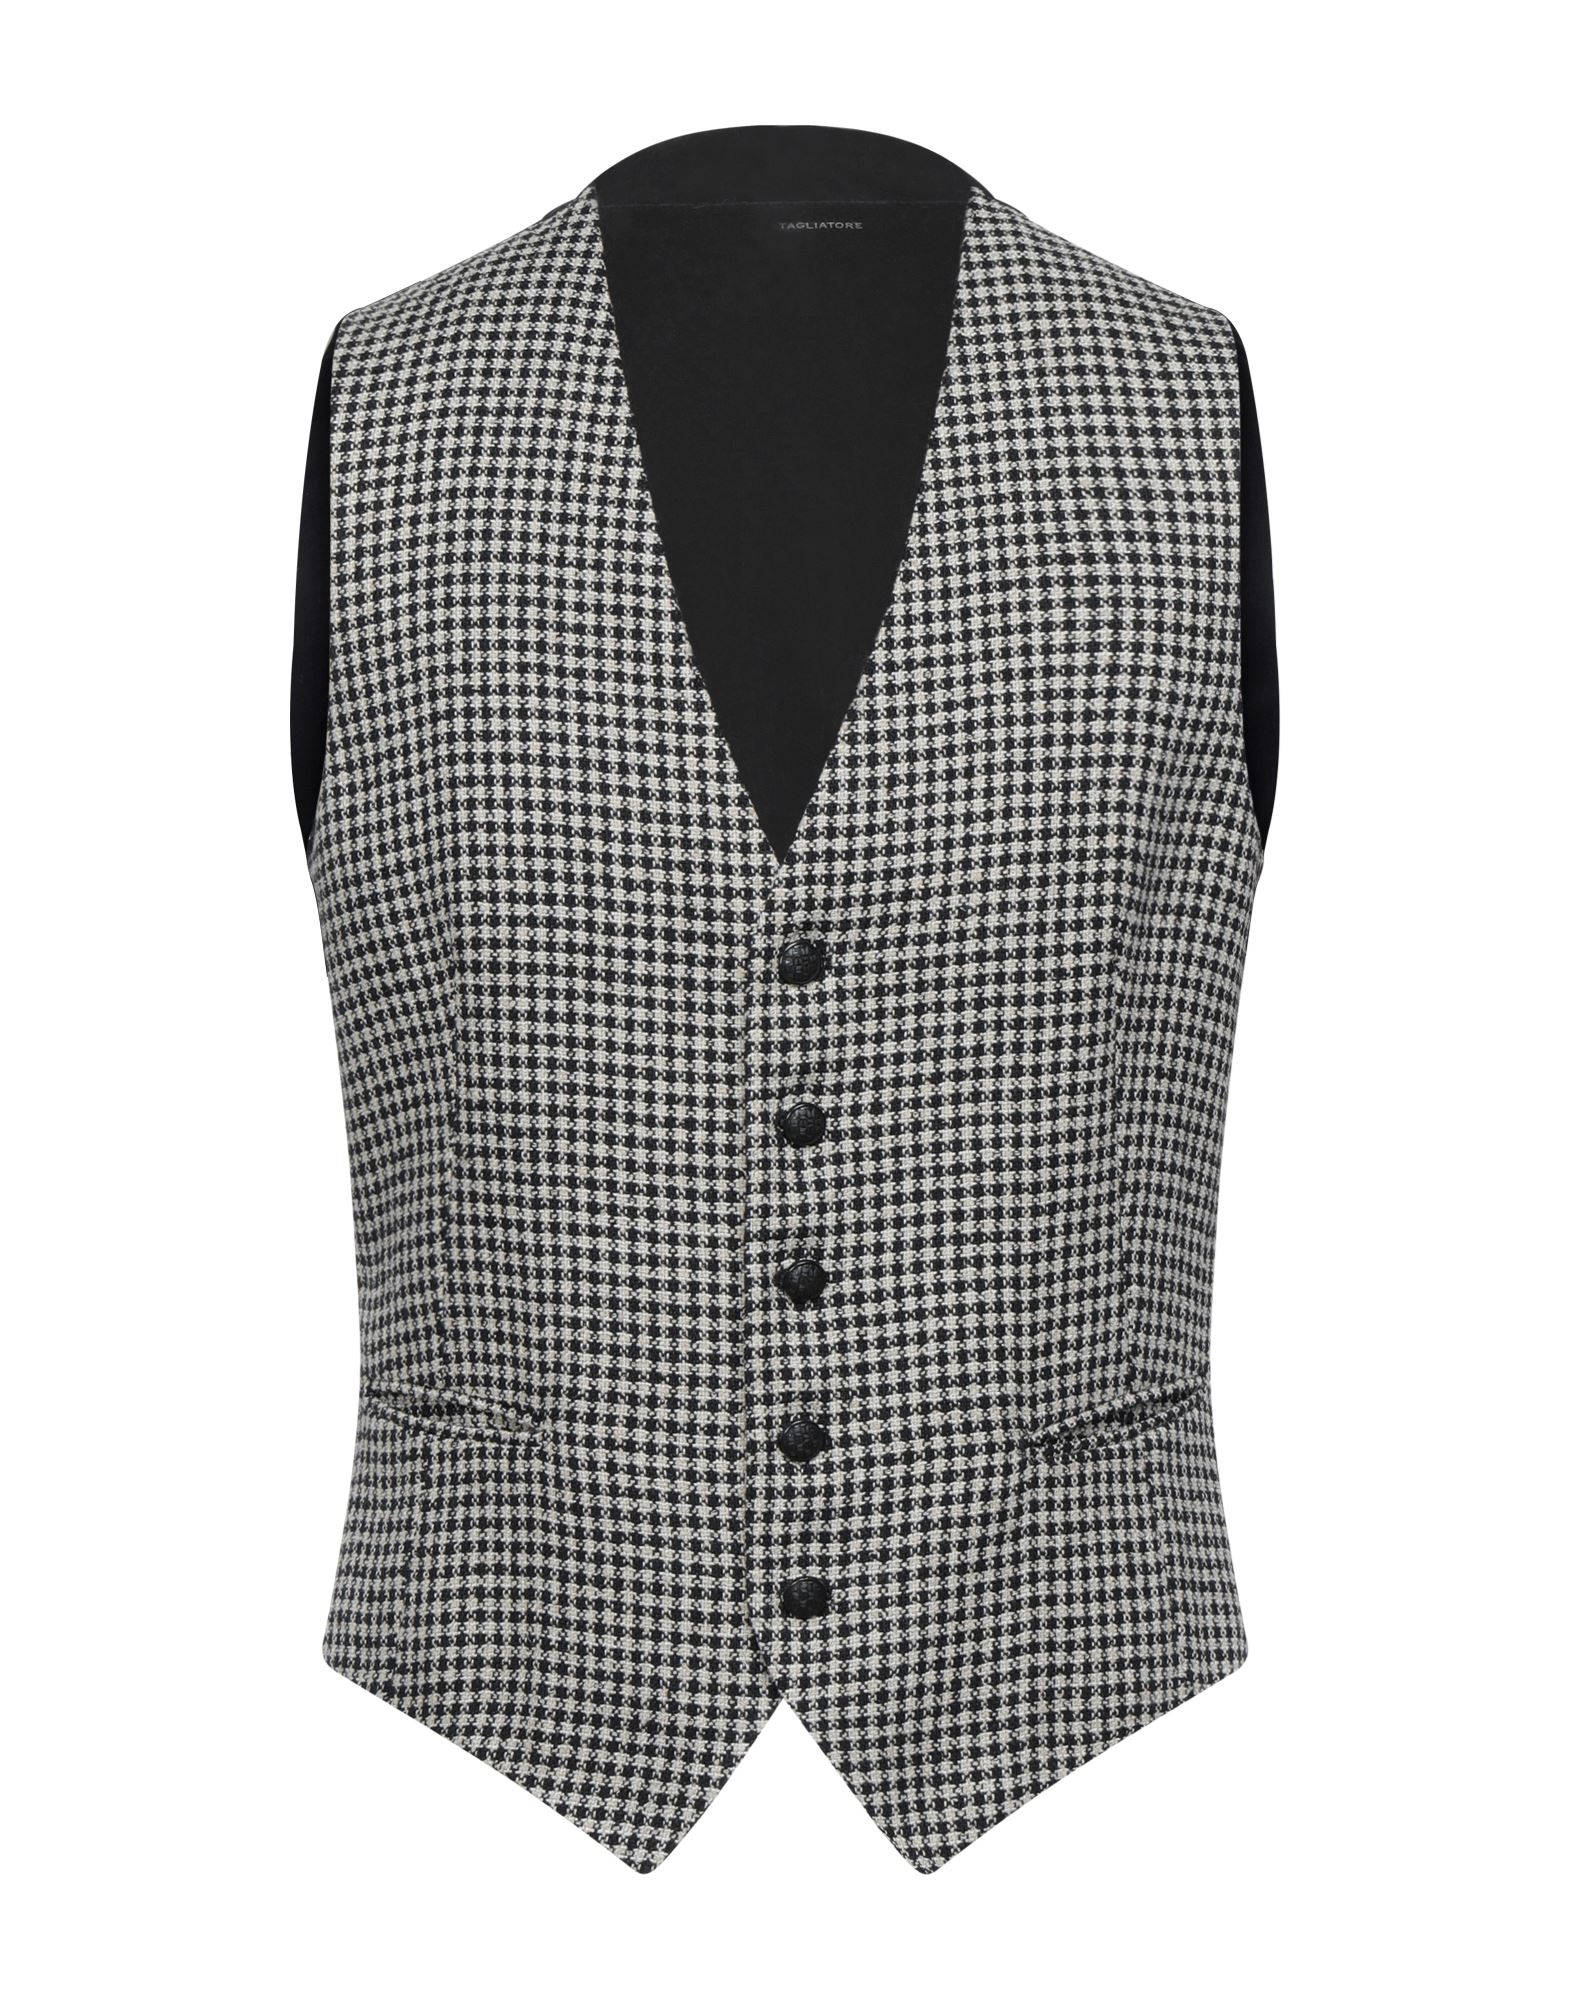 TAGLIATORE Vests. plain weave, no appliqués, two-tone, v-neck, sleeveless, single-breasted, multipockets, button closing, fully lined. 66% Linen, 20% Cotton, 14% Polyester